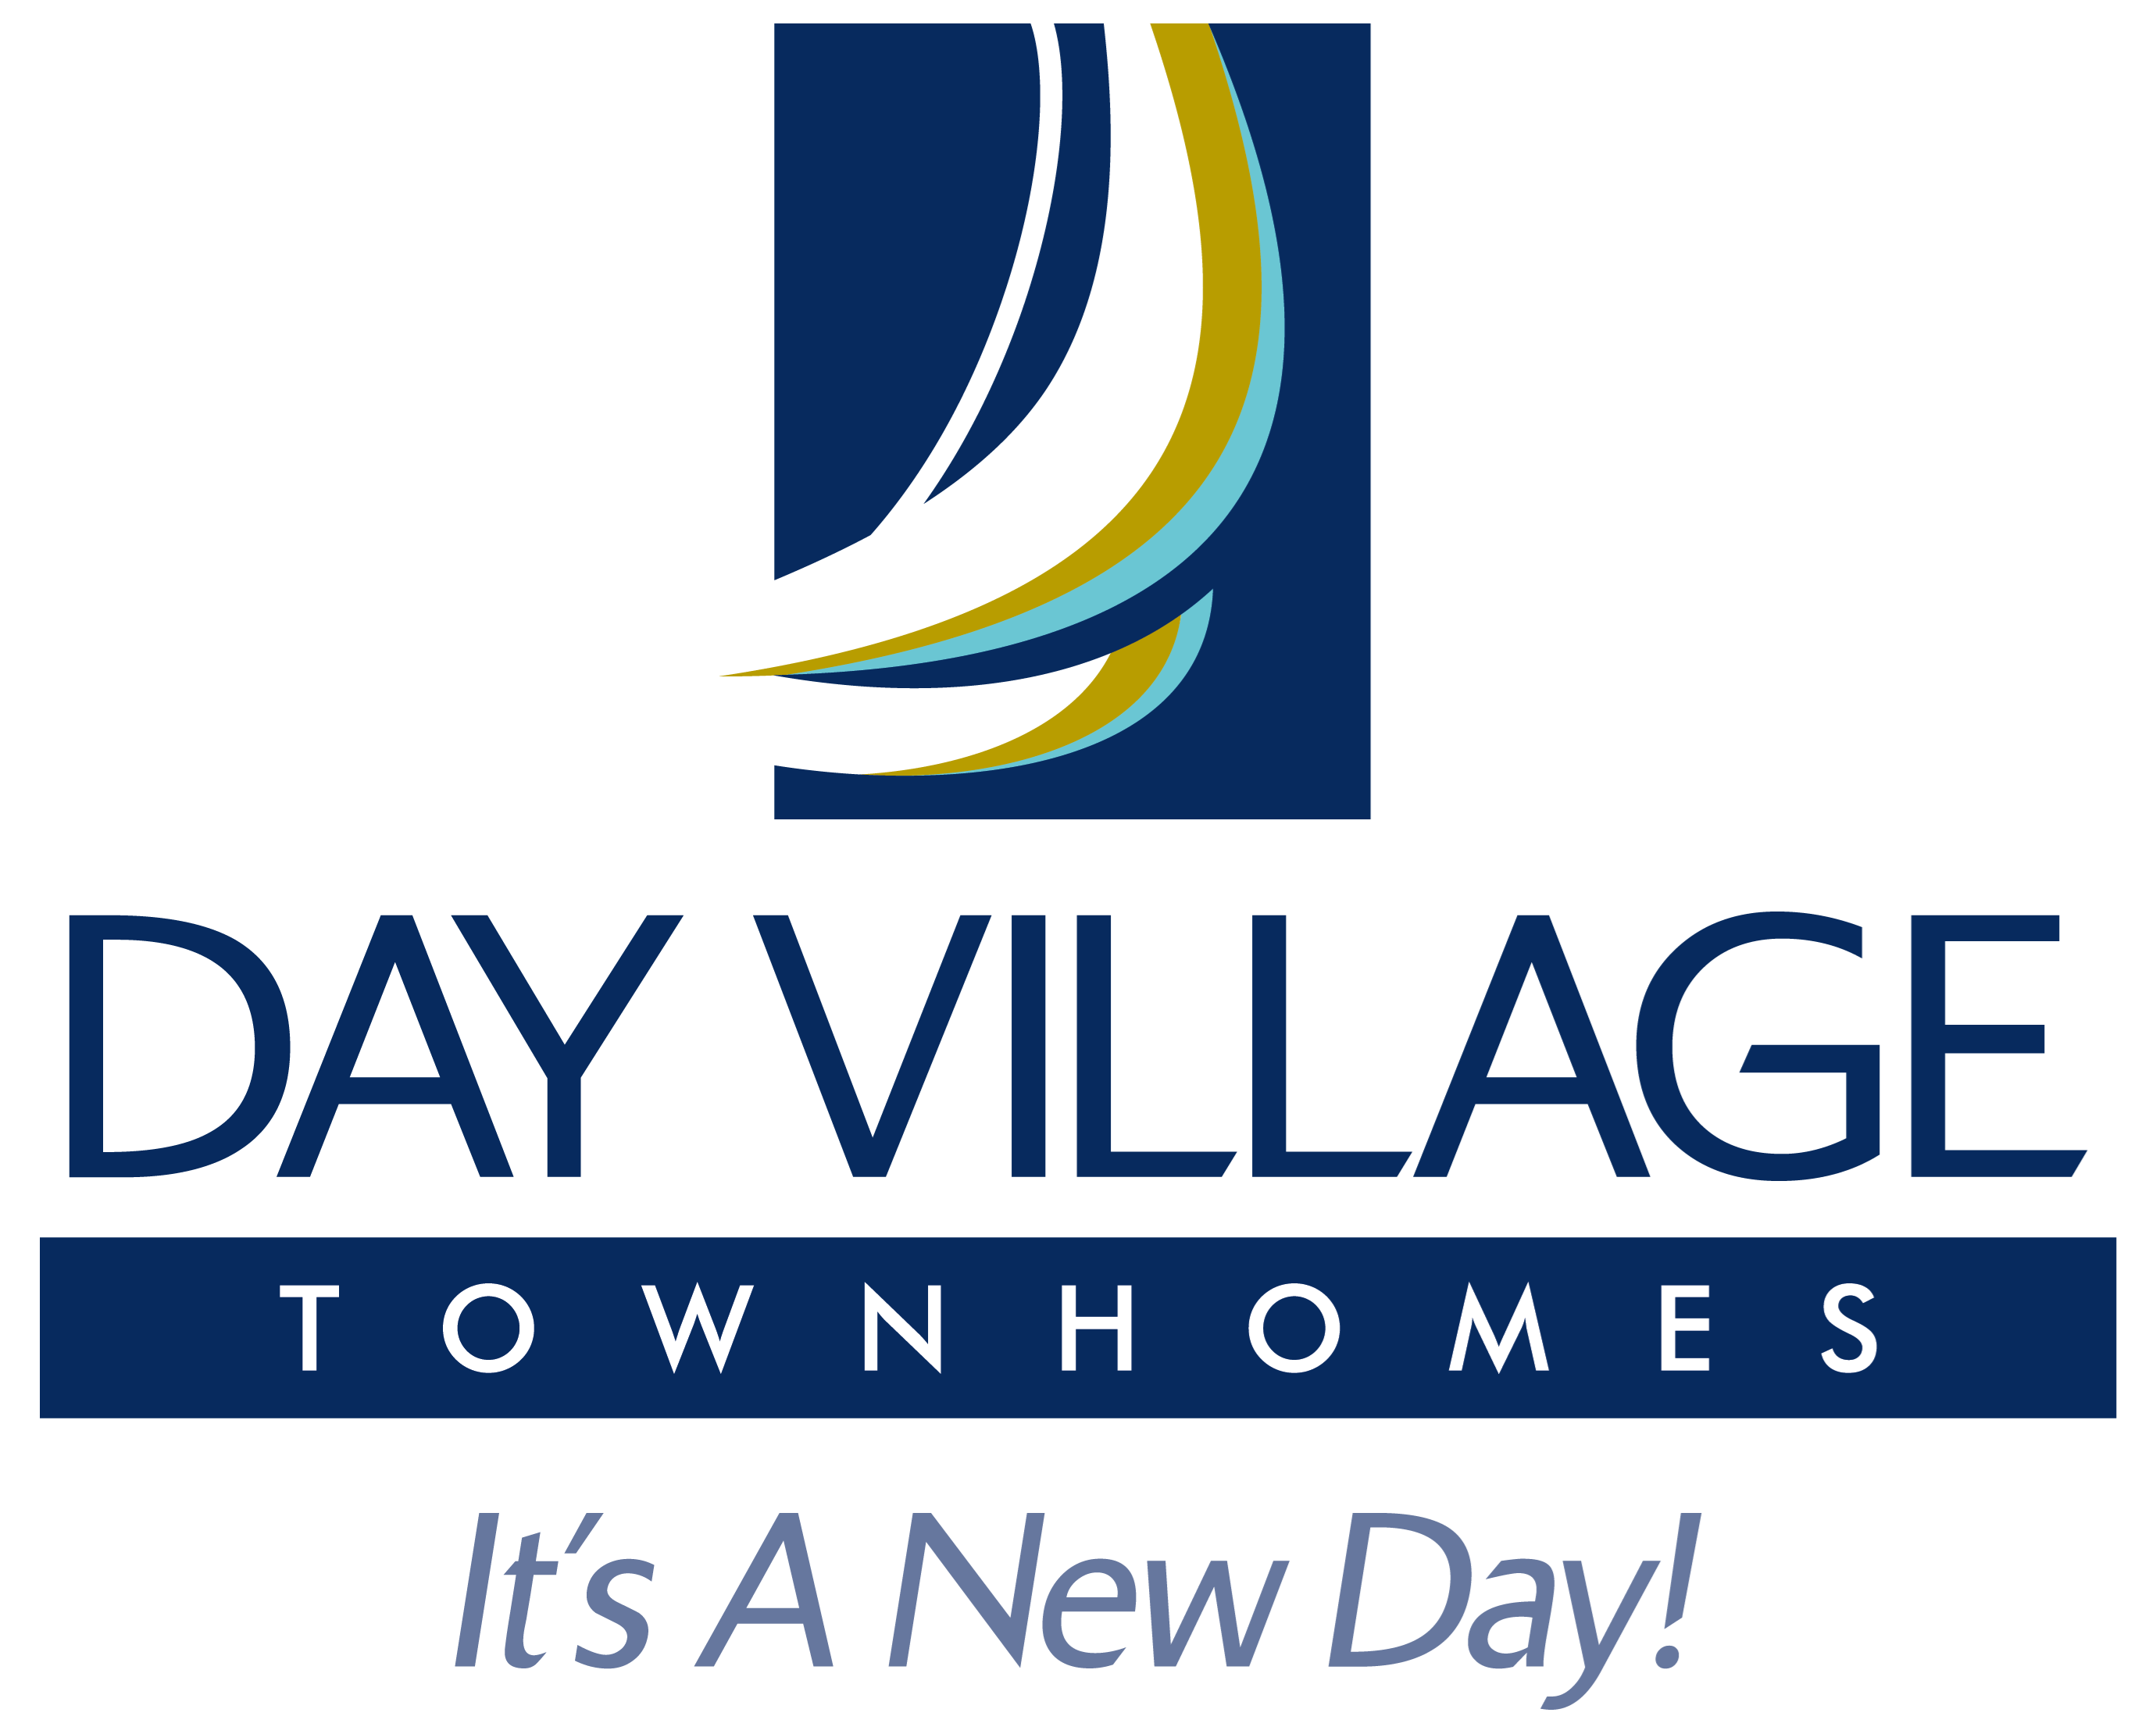 Day Village Townhomes Logo, Dundalk